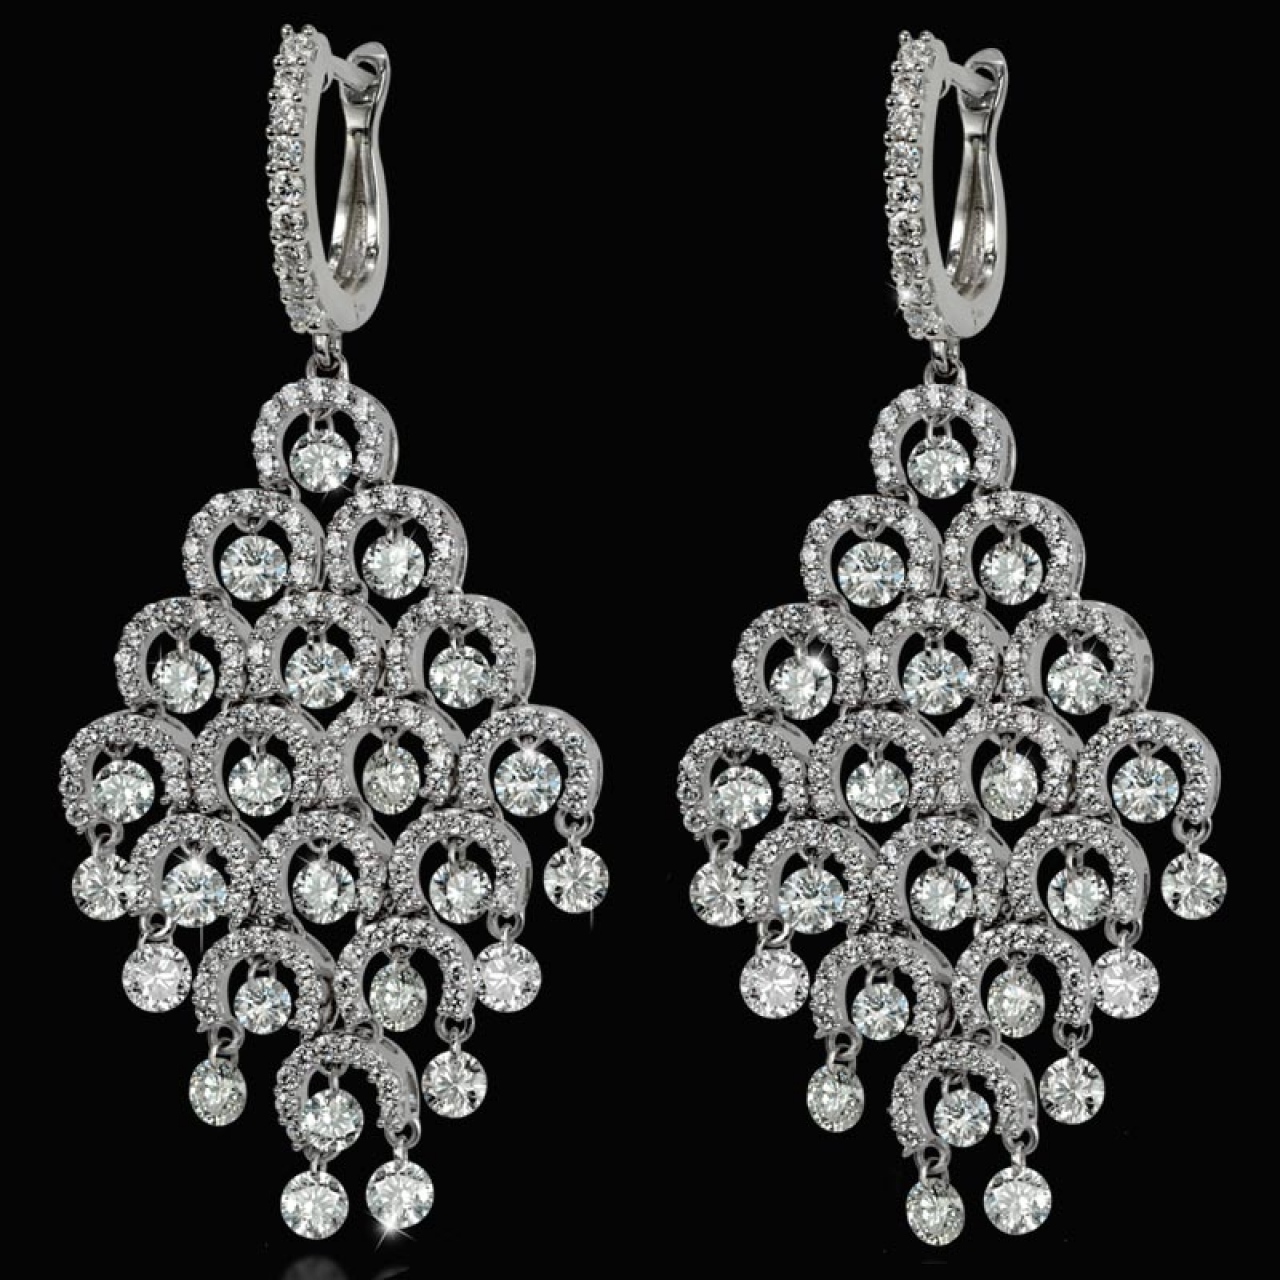 earpendants-earrings-en-tremblant-diamonds